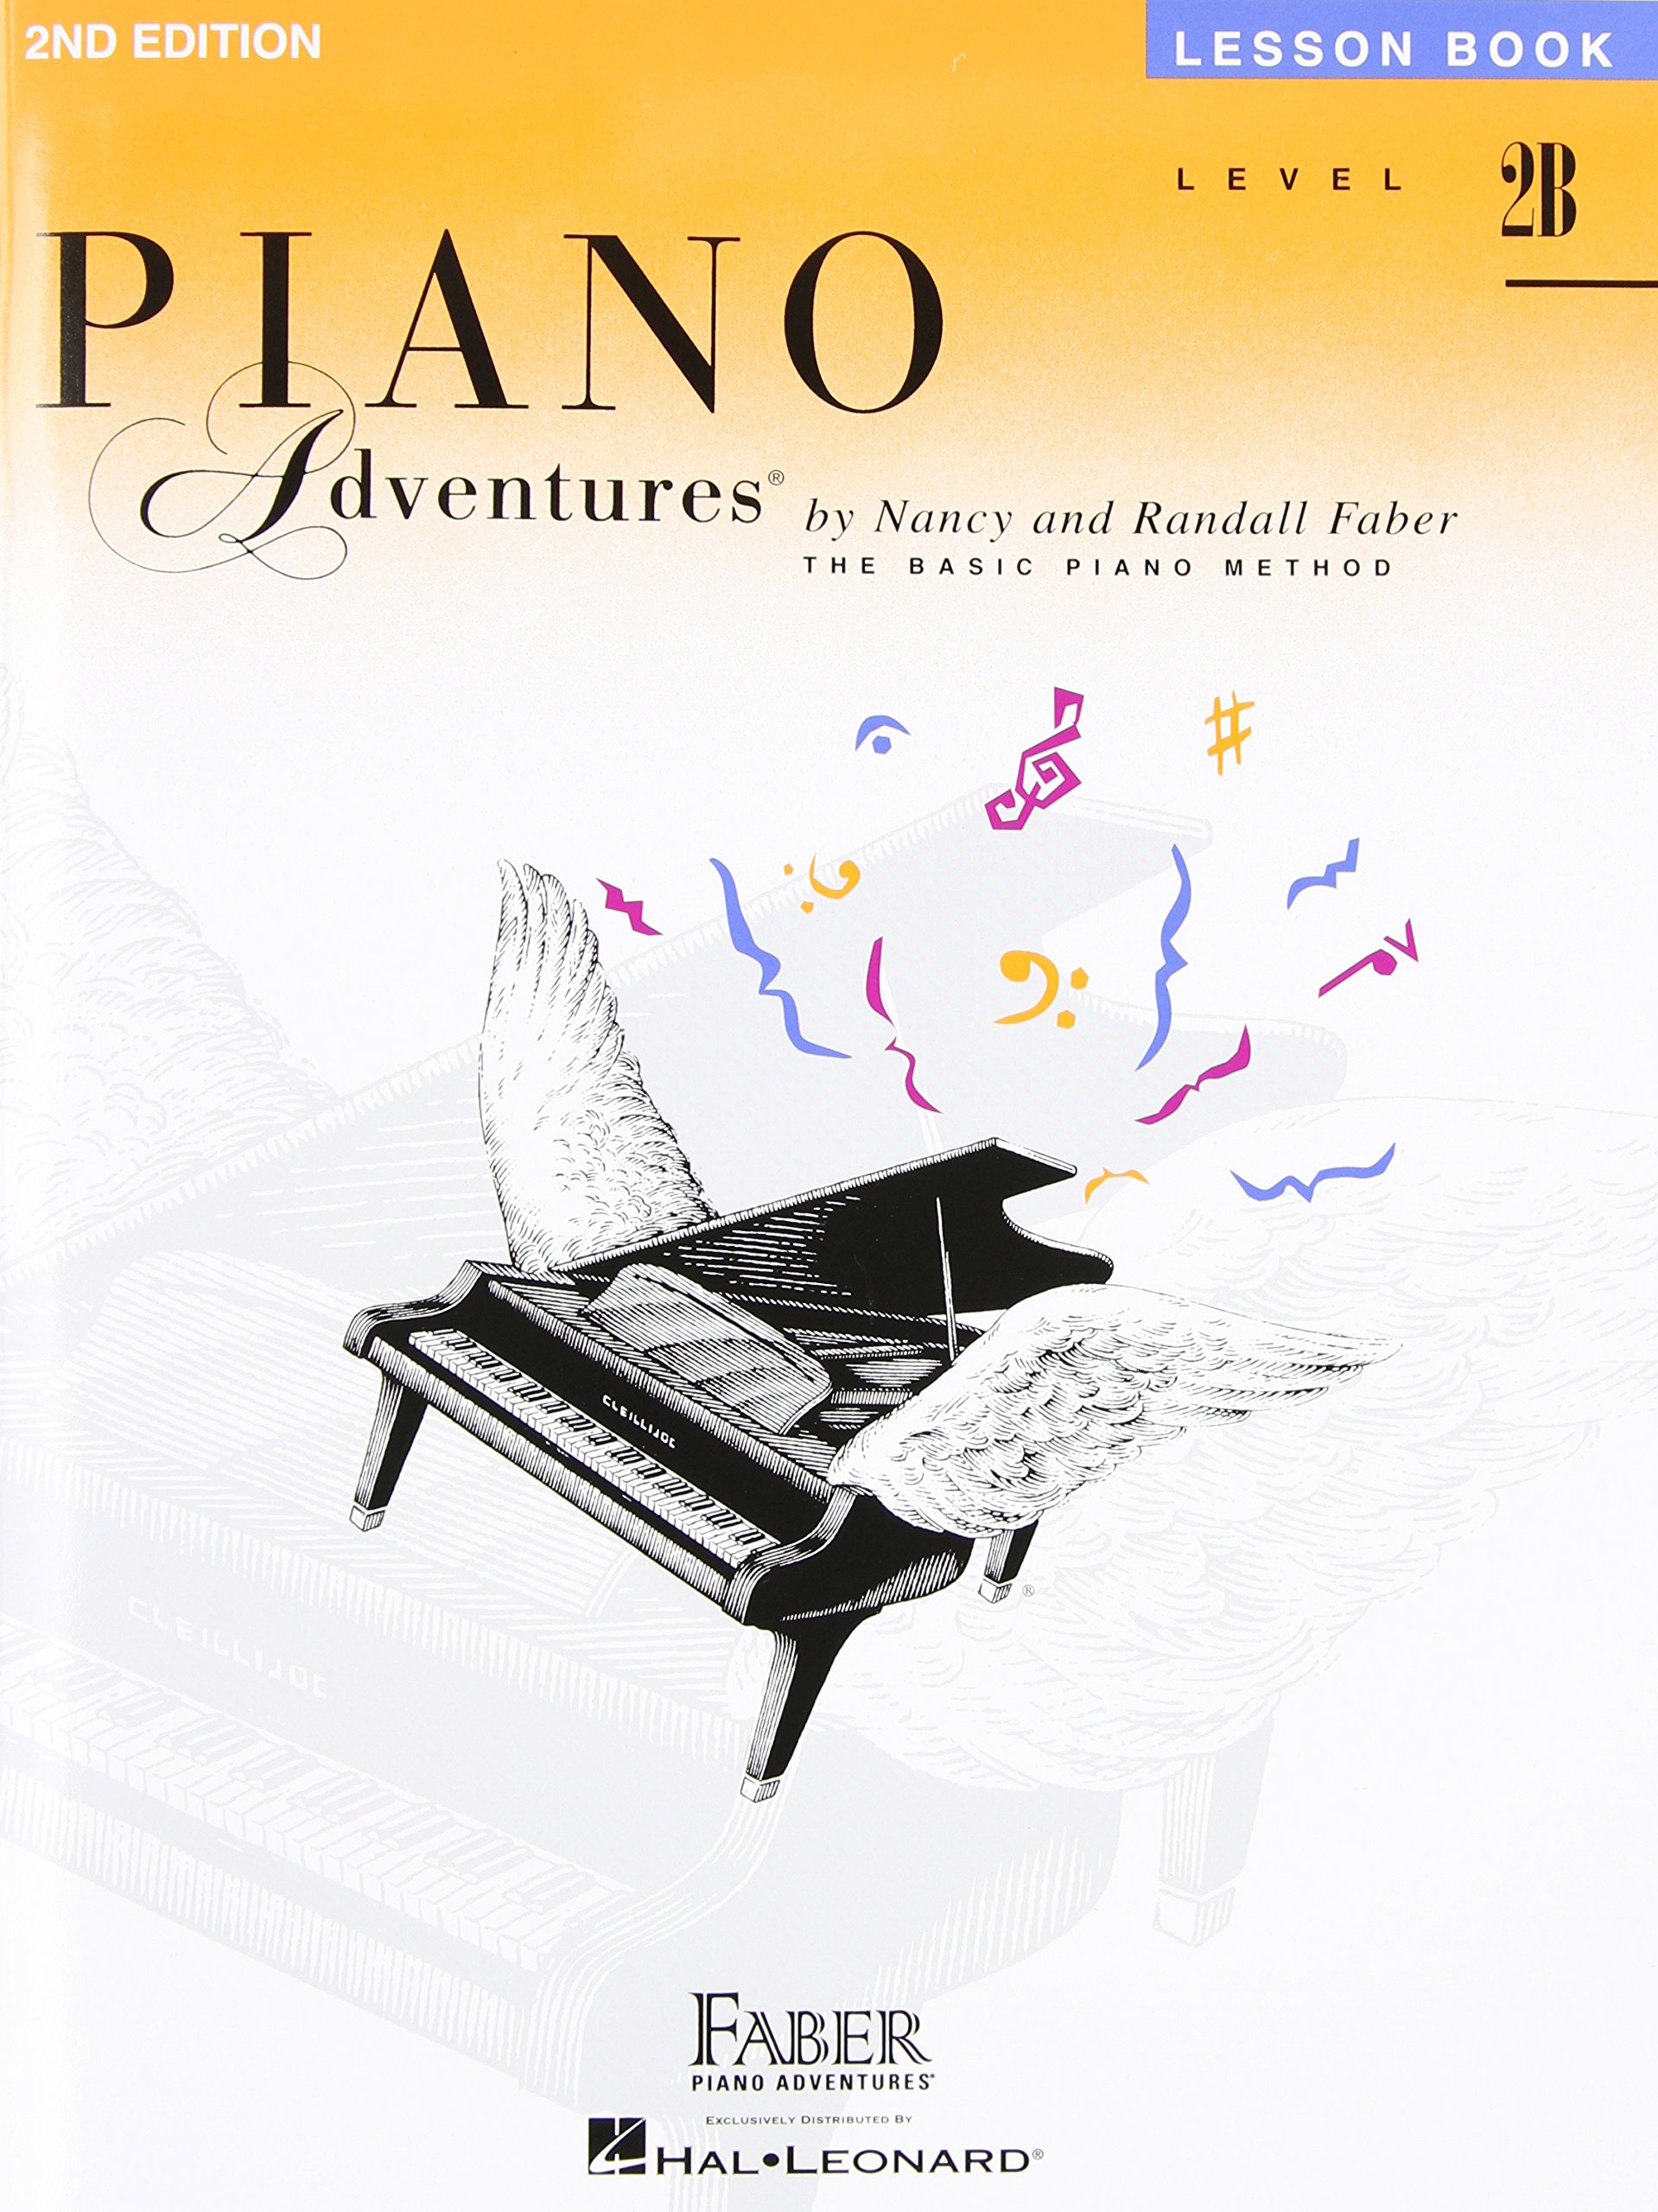 piano adventures level 2b 7 book including 1 cd set 7 book including 1 cd set lesson theory technique artistry performance gold star performance with cd popular repertoire christmas books